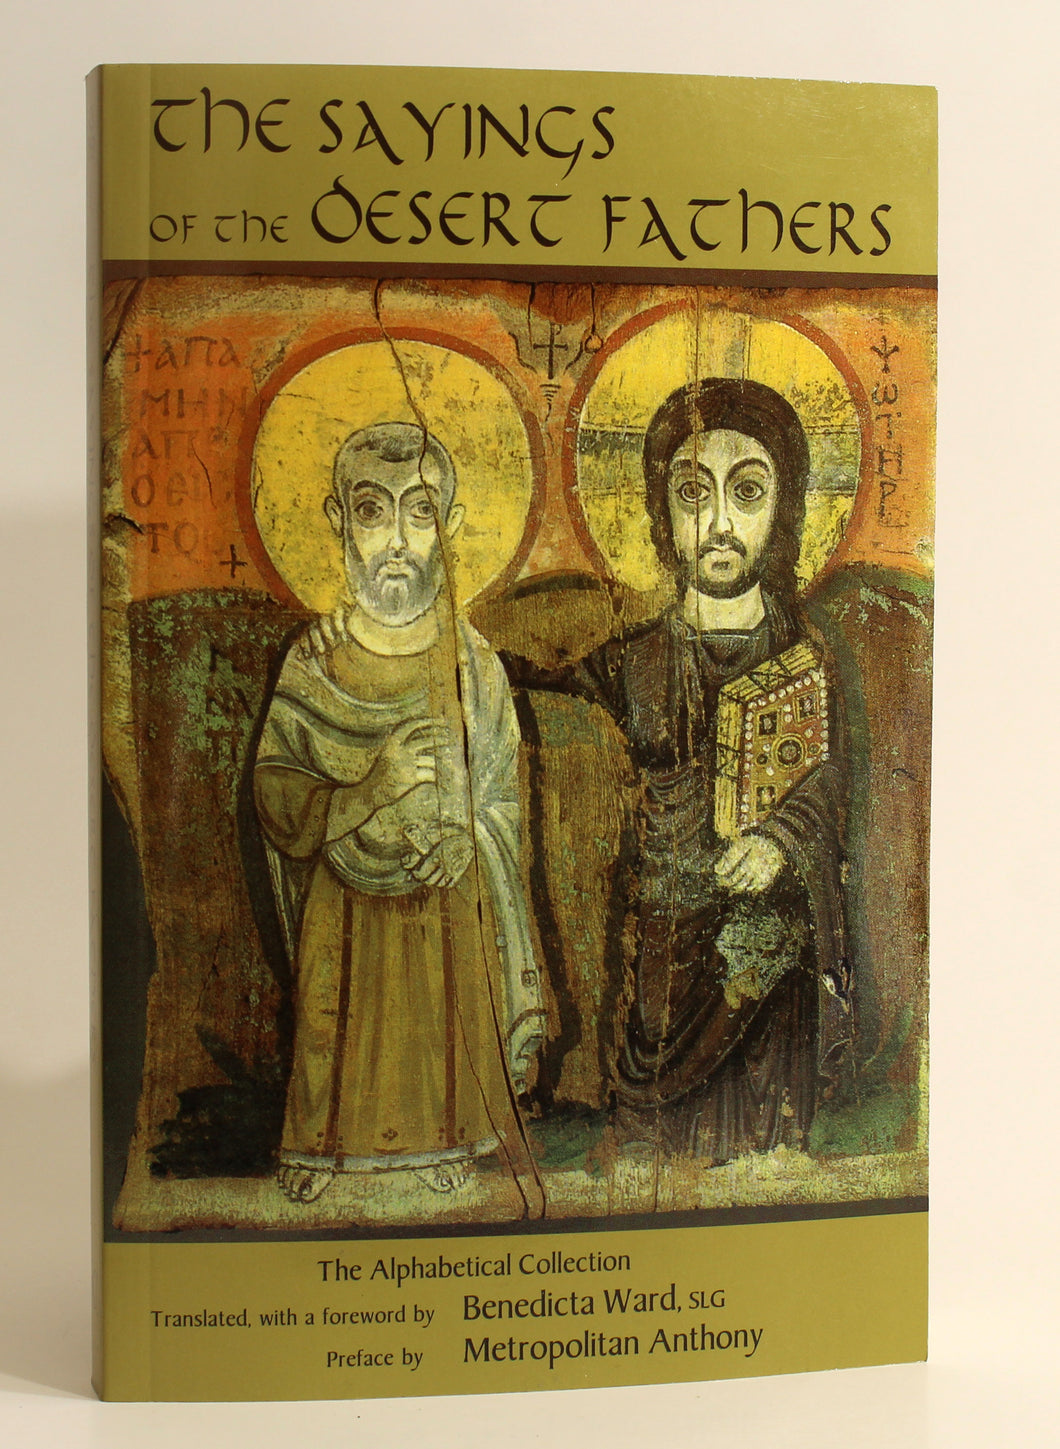 The Sayings of the Desert Fathers by